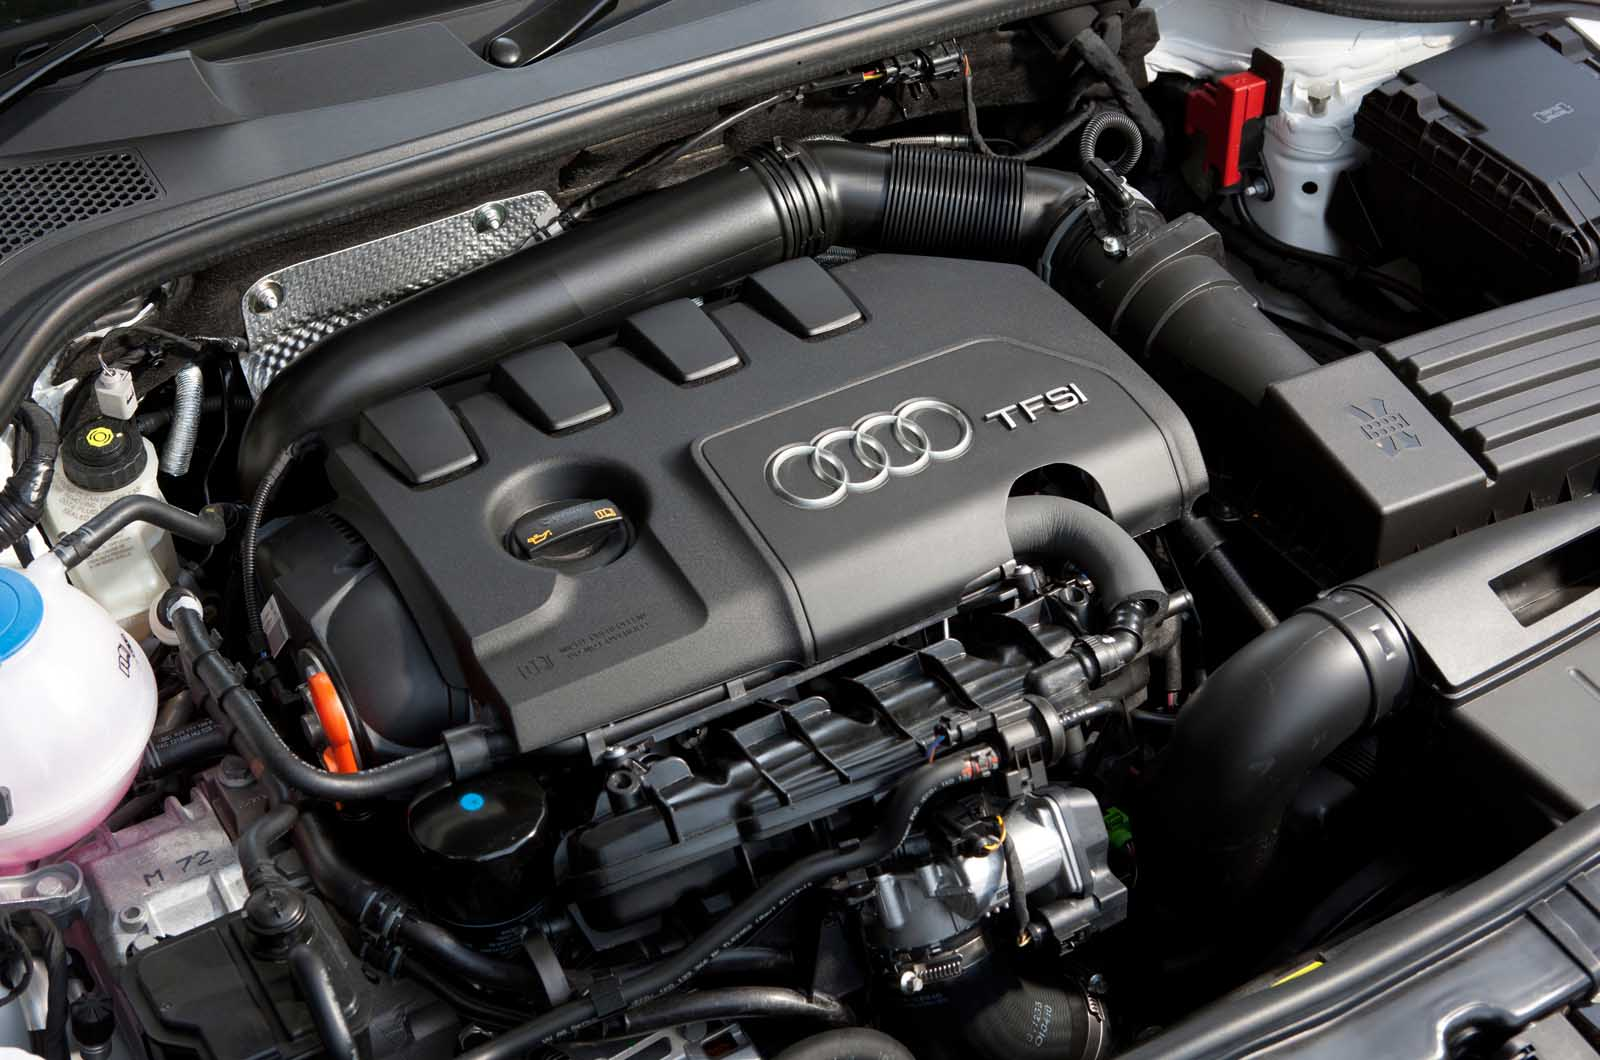 VAG 1.8 TFSI engine